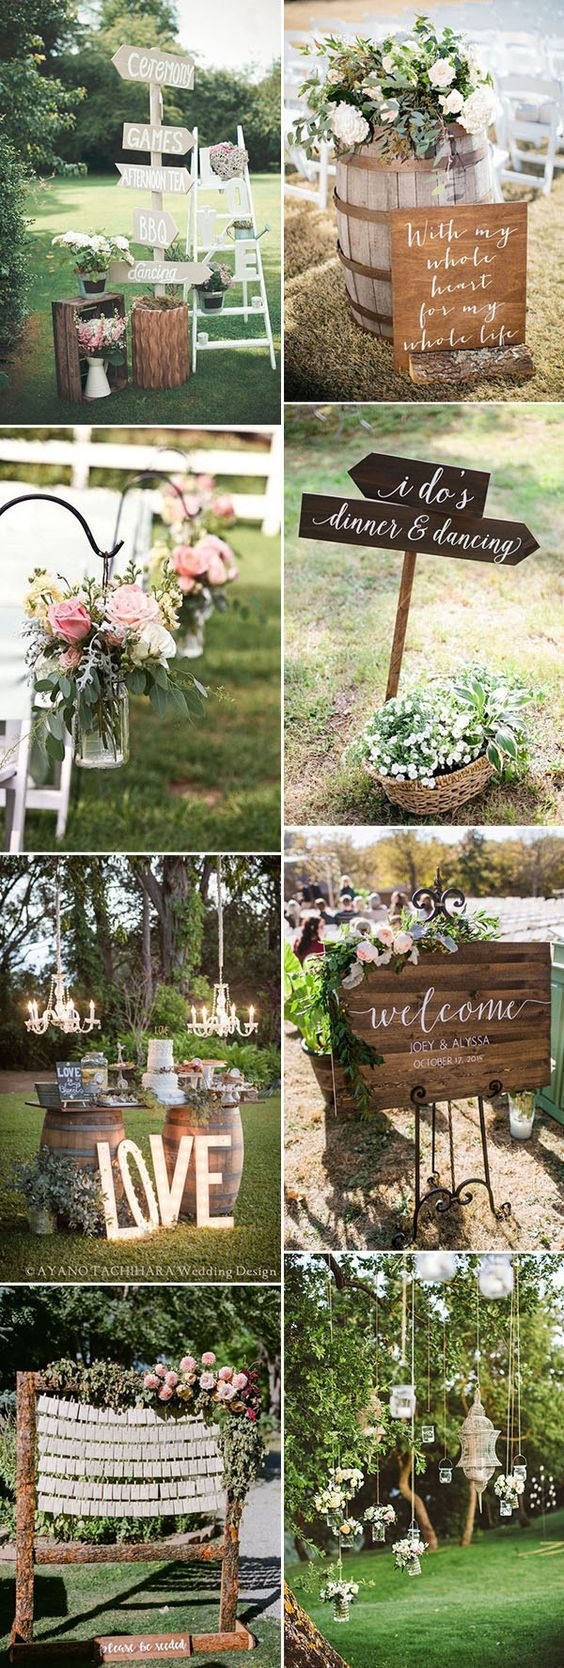 Diy rustic wedding decor ideas  amazing garden wedding decor ideas that are easy to DIY  Shabby